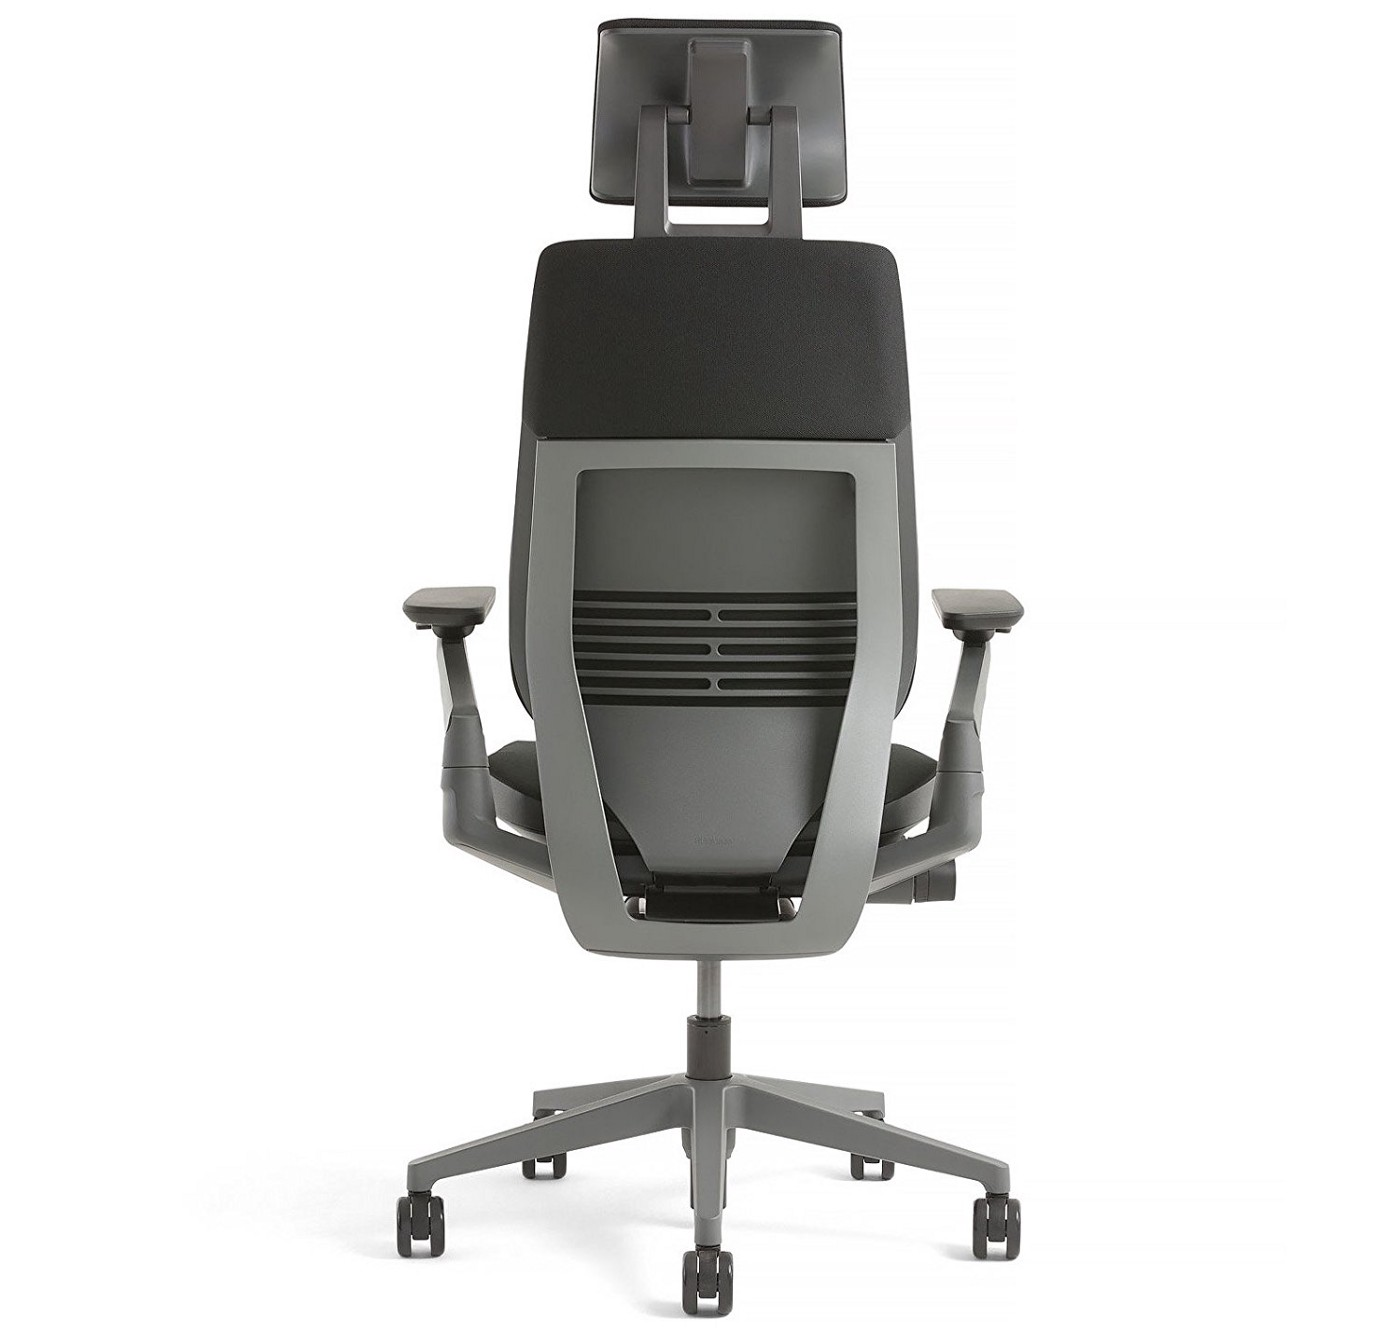 Steelcase Gesture Chair from the back